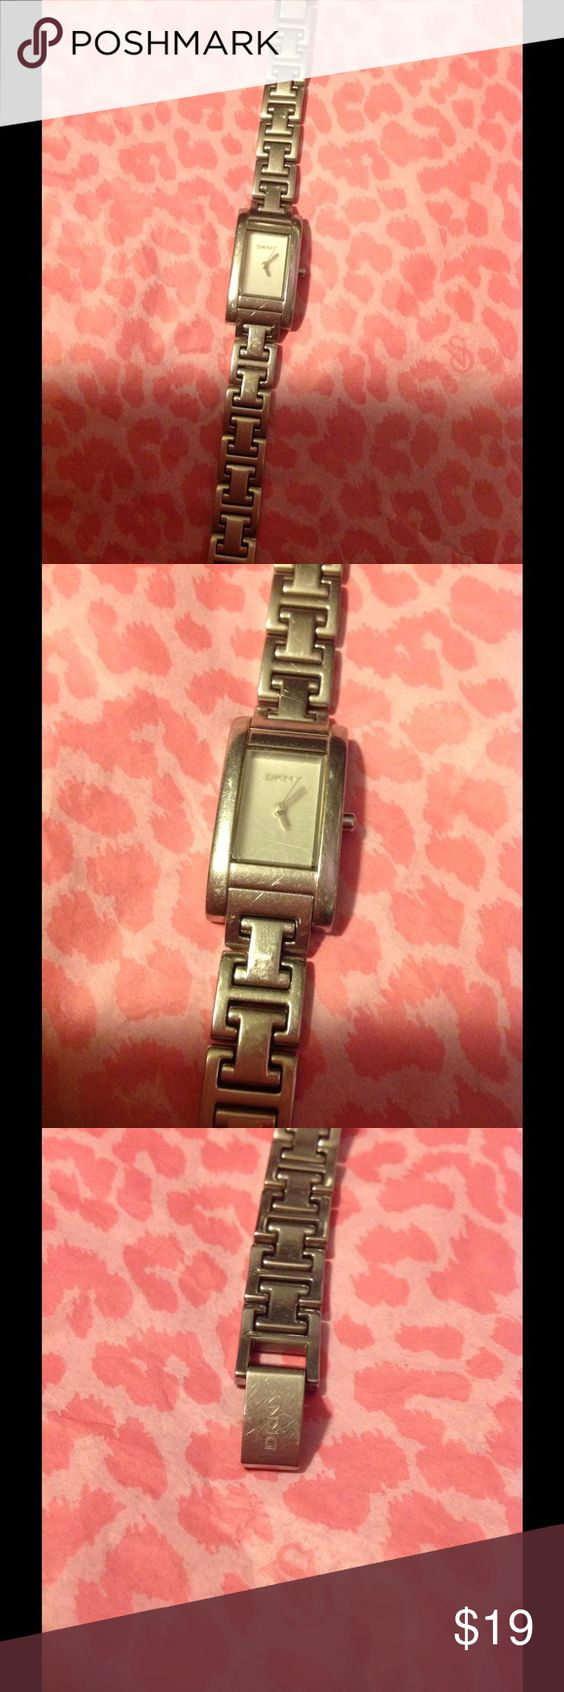 """DKNY Chainlink Watch Stainless Steel DKNY Chainlink Watch... Very much pre-loved many years ago... No harsh scratches, but can definitely see it was used & loved... 7"""" Long... Needs new battery since this classic piece hasn't seen light in many years... I am unable to track down the original box and its instructional book, which I know I've seen and paid no mind to... (Typical, mow that I'm in search of them both, which are not together, they're no where to be found!) A safe box will be used…"""